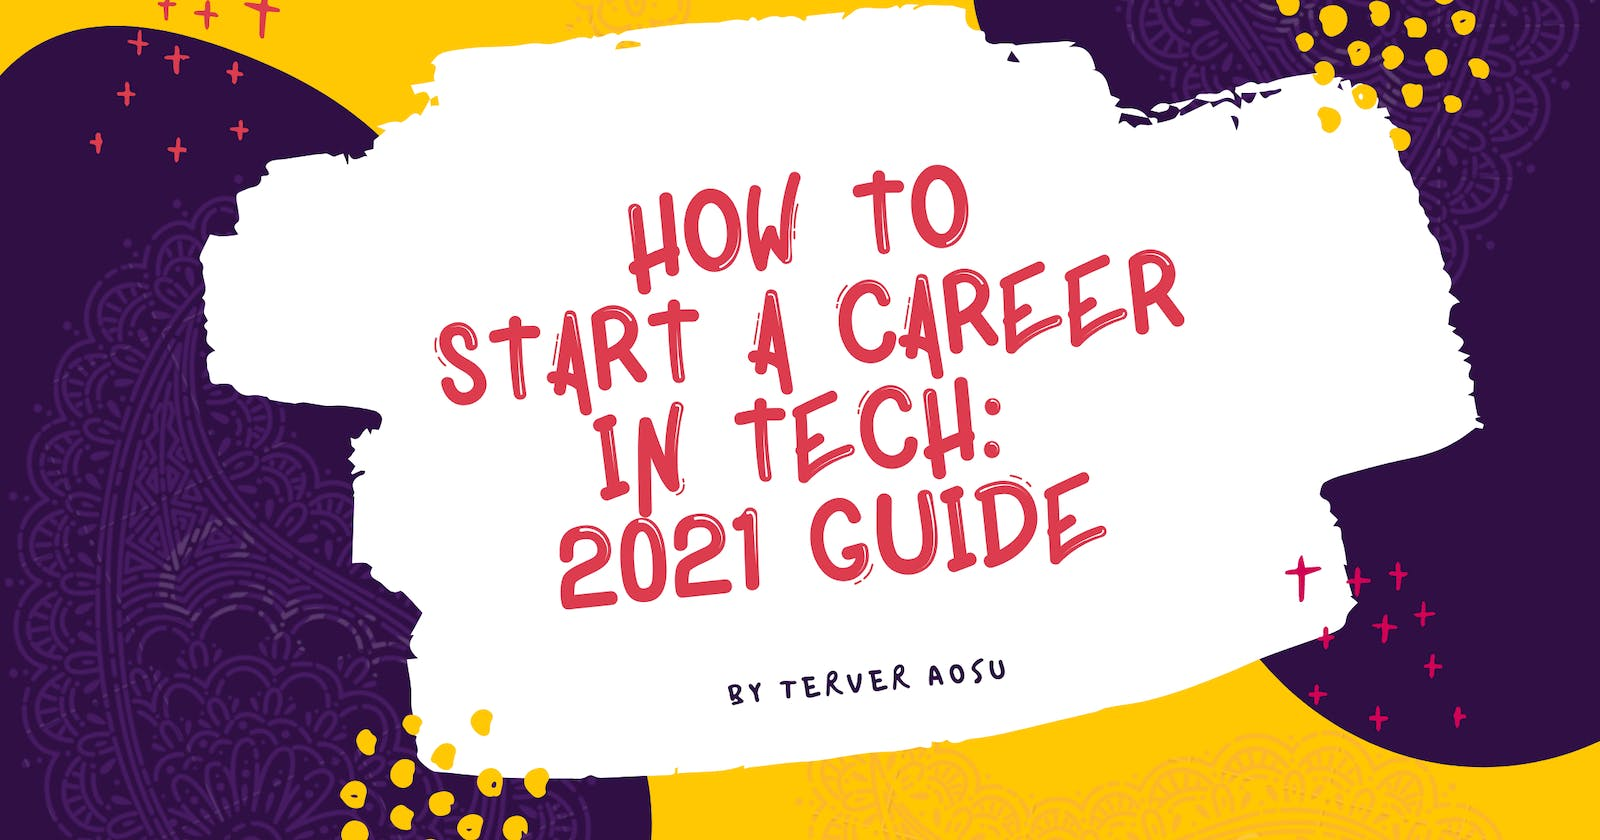 How to Start A Career in Tech: 2021 guide